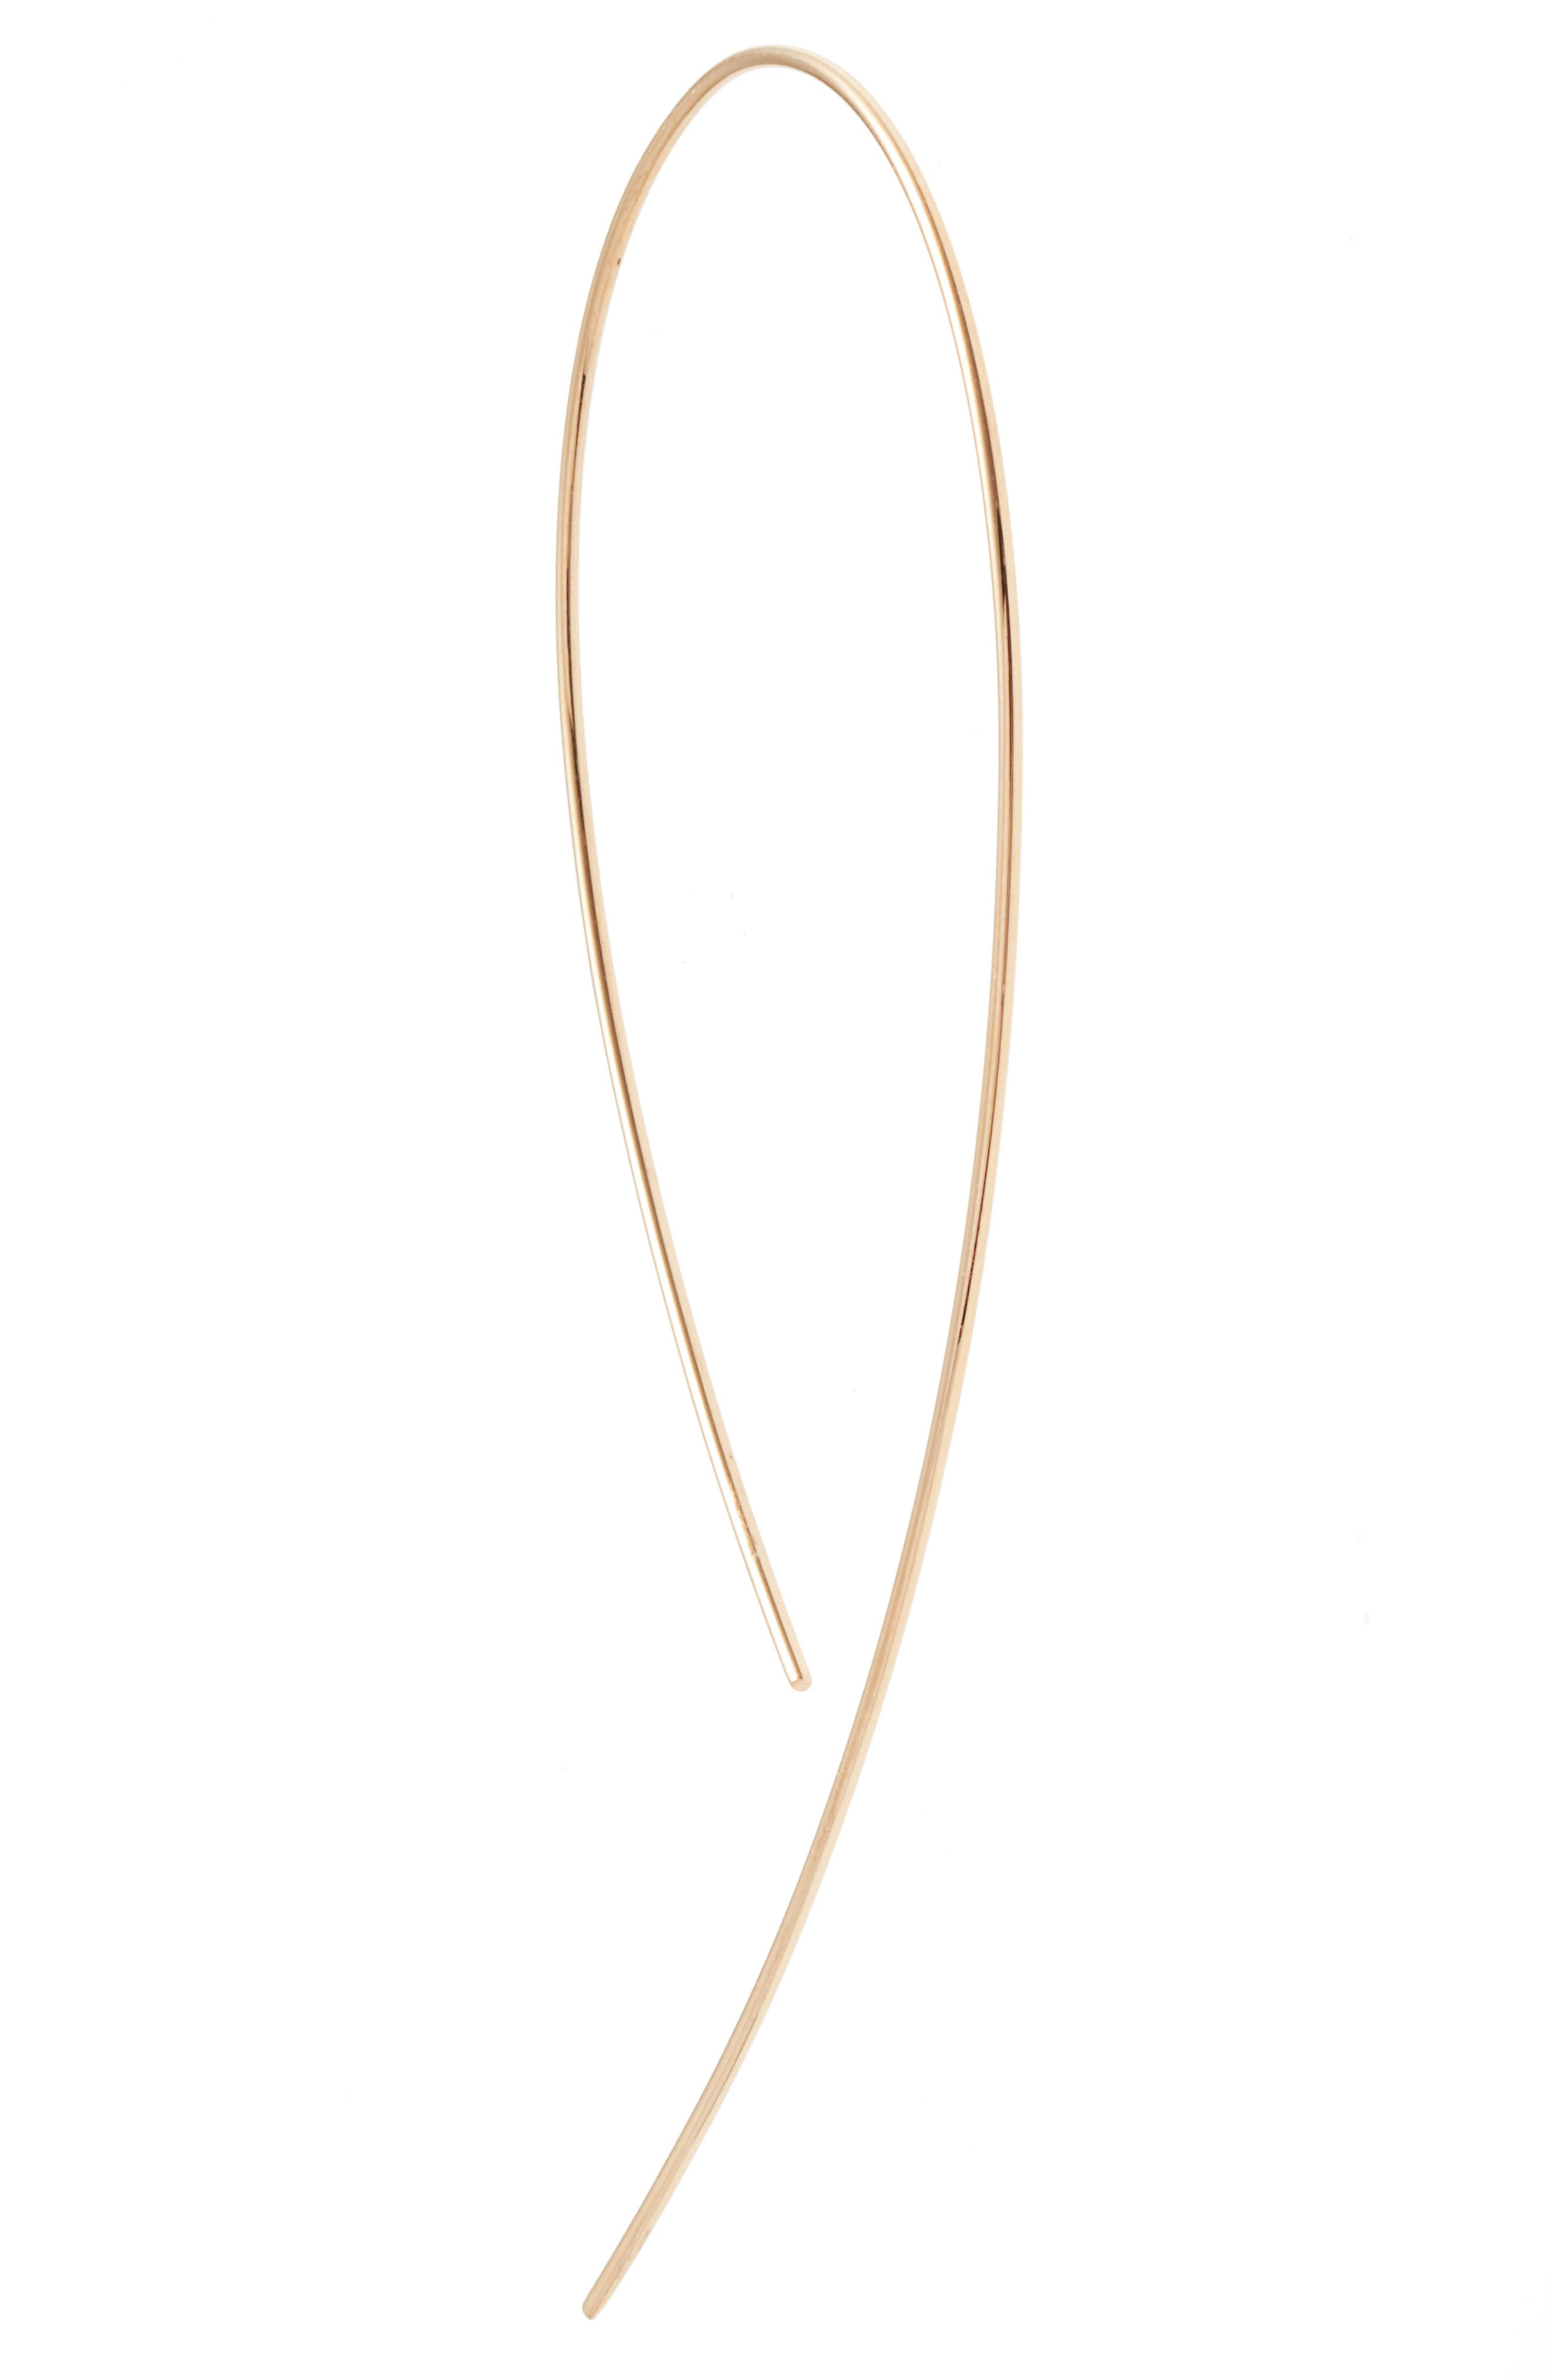 'Hooked on Hoop' Earrings,                             Alternate thumbnail 5, color,                             YELLOW GOLD